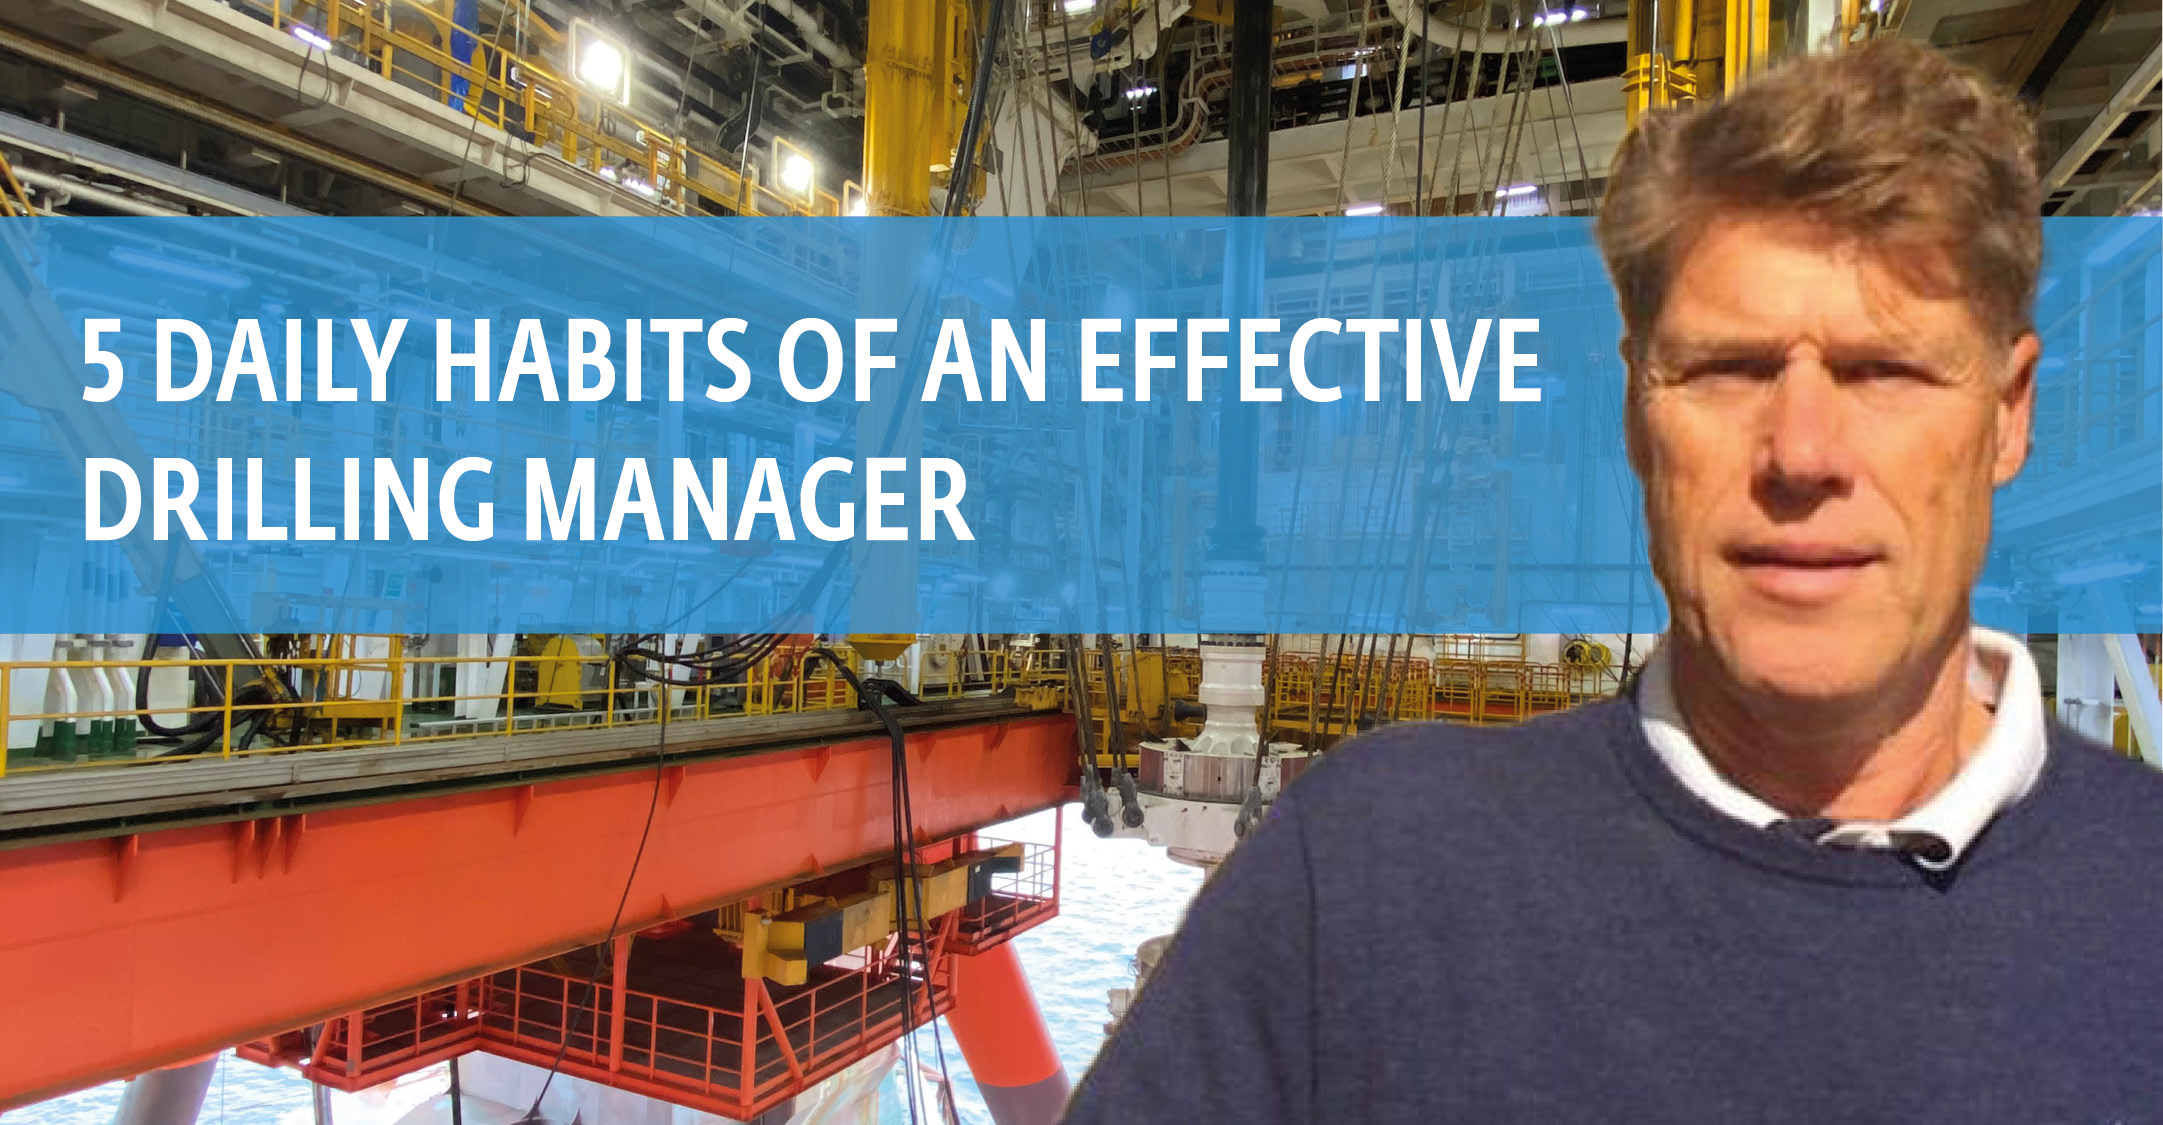 5 daily habits of an effective Drilling Manager